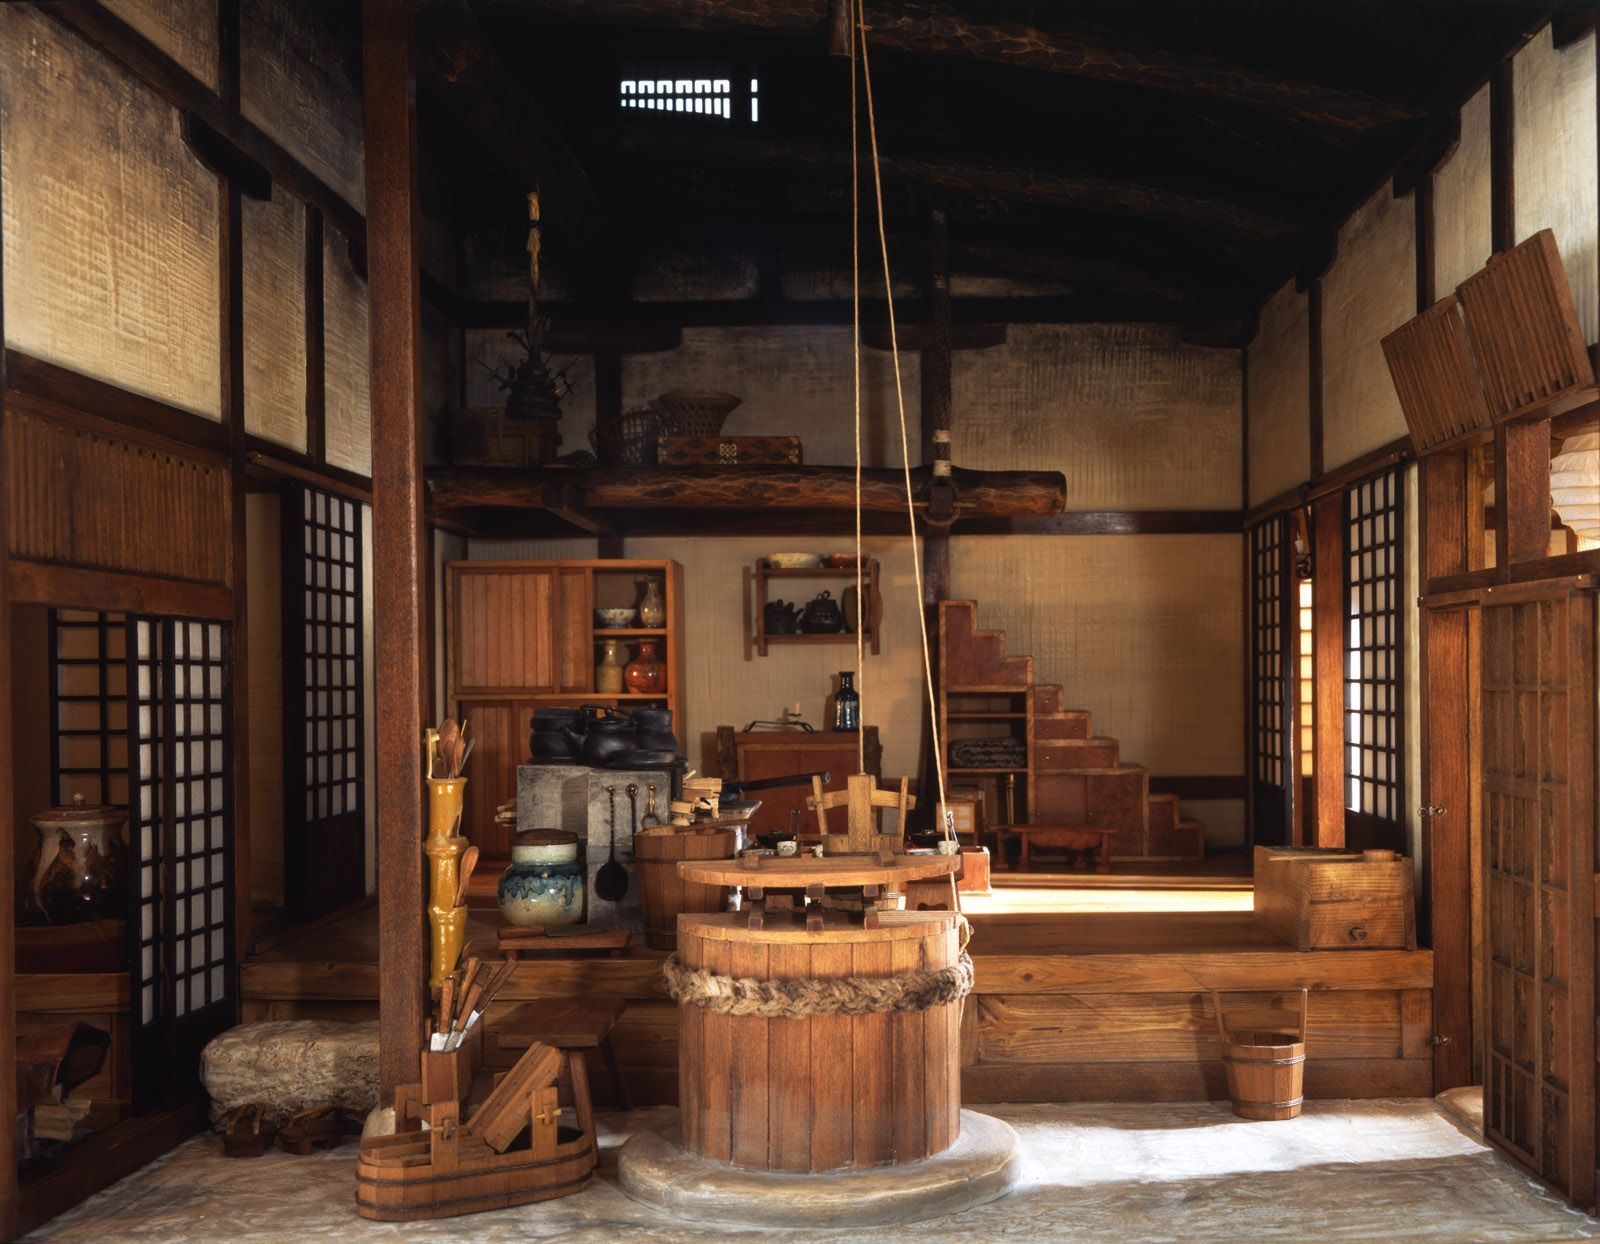 traditional japanese kitchen are undoubtedly extremely